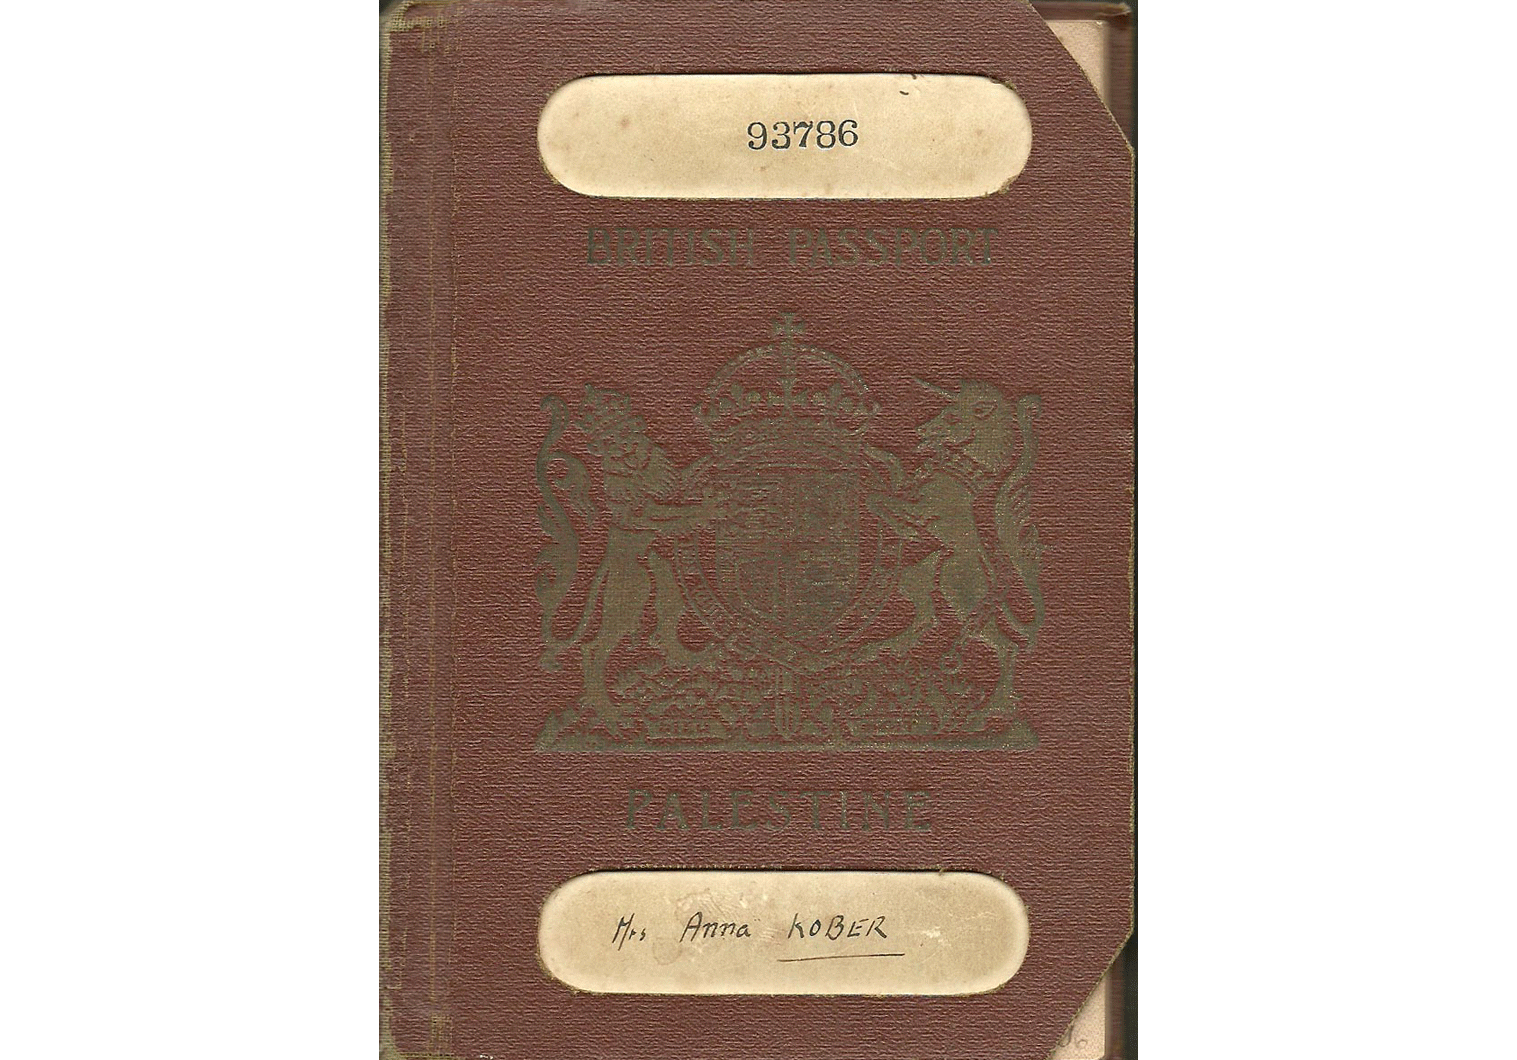 Palestine British passport